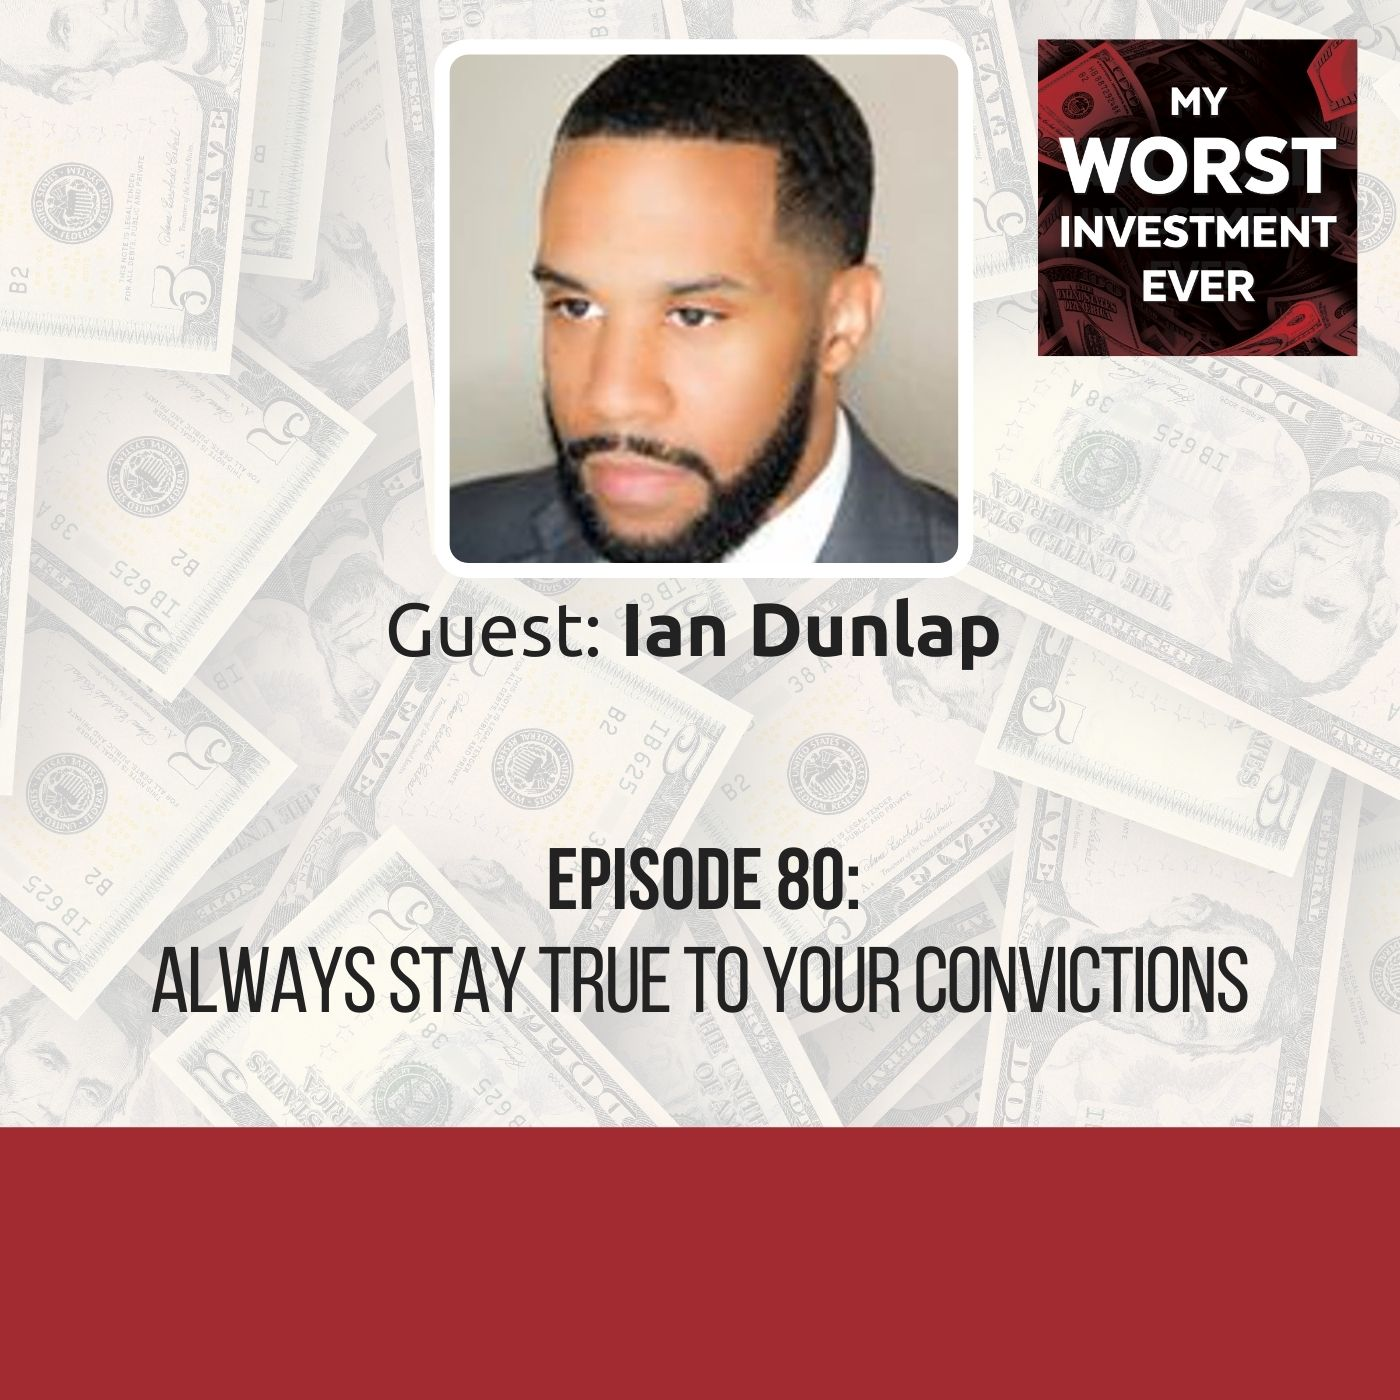 Episode 80 Ian Dunlap Always Stay True To Your Convictions